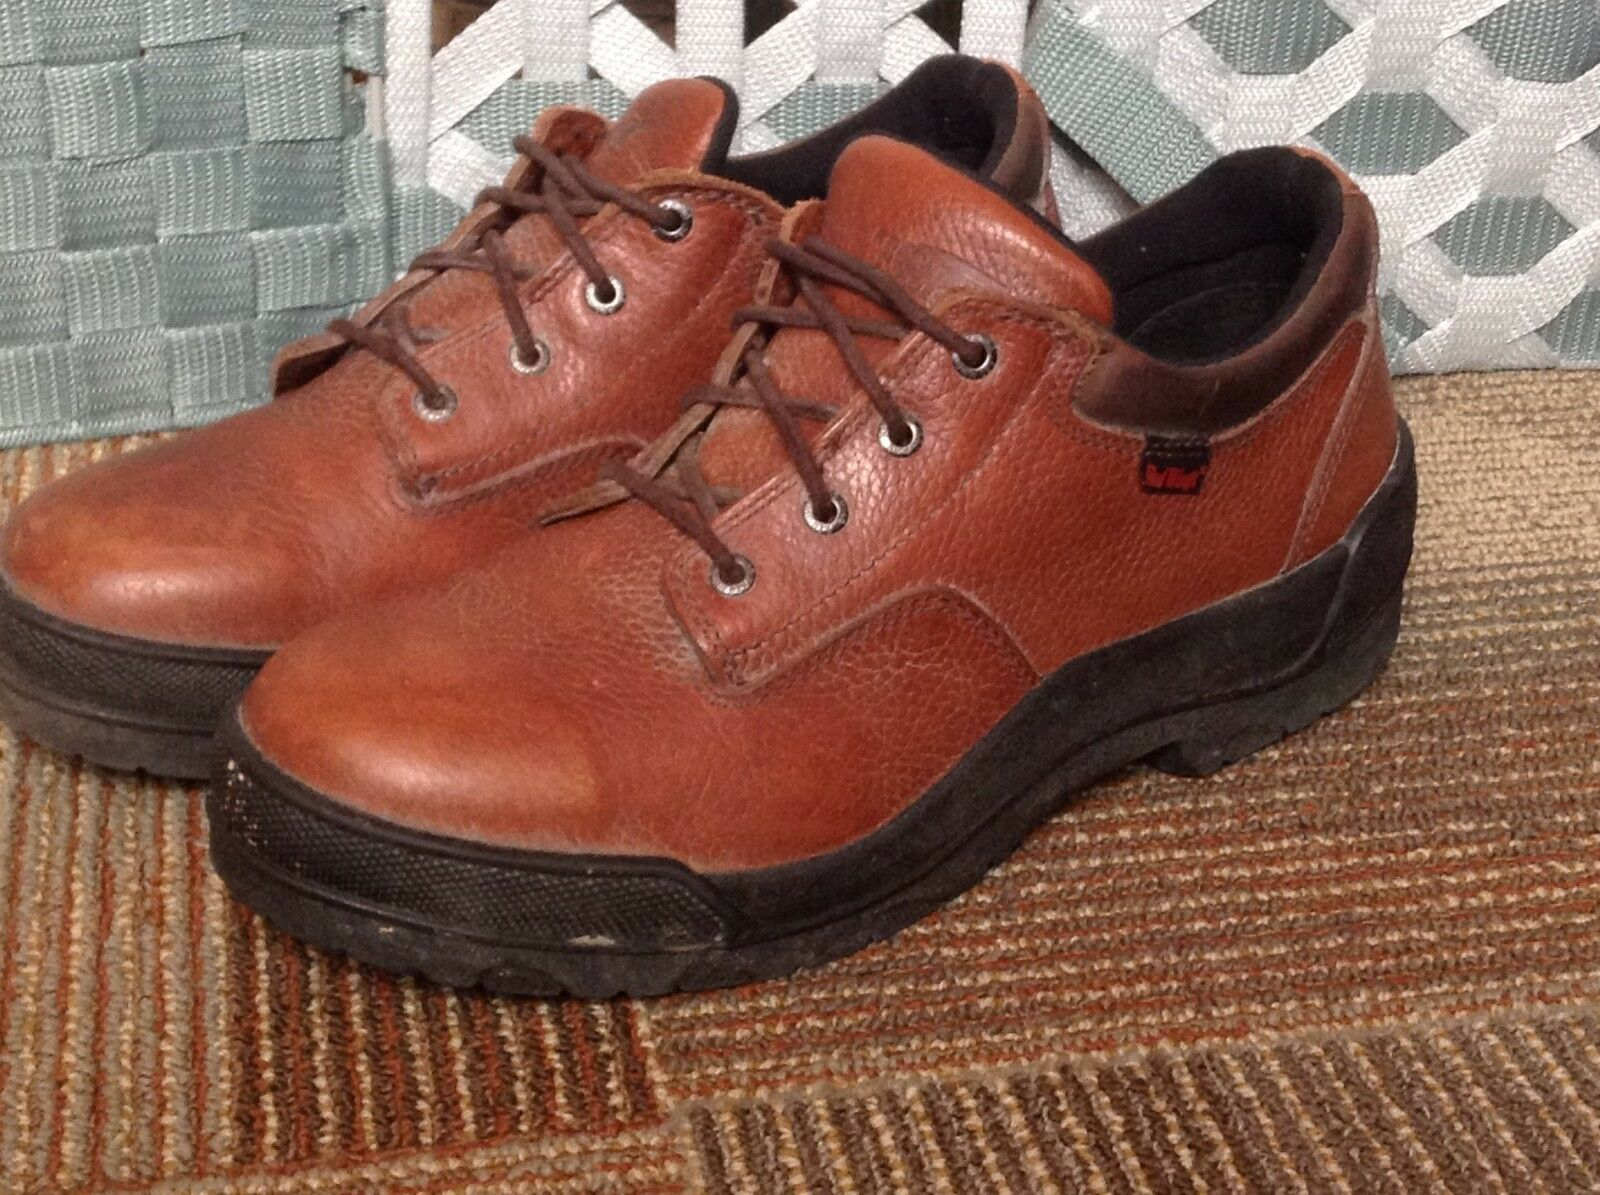 VTG Red Wing Steel Toe Oxford shoes Brown Leather Men's USA Made 10 D